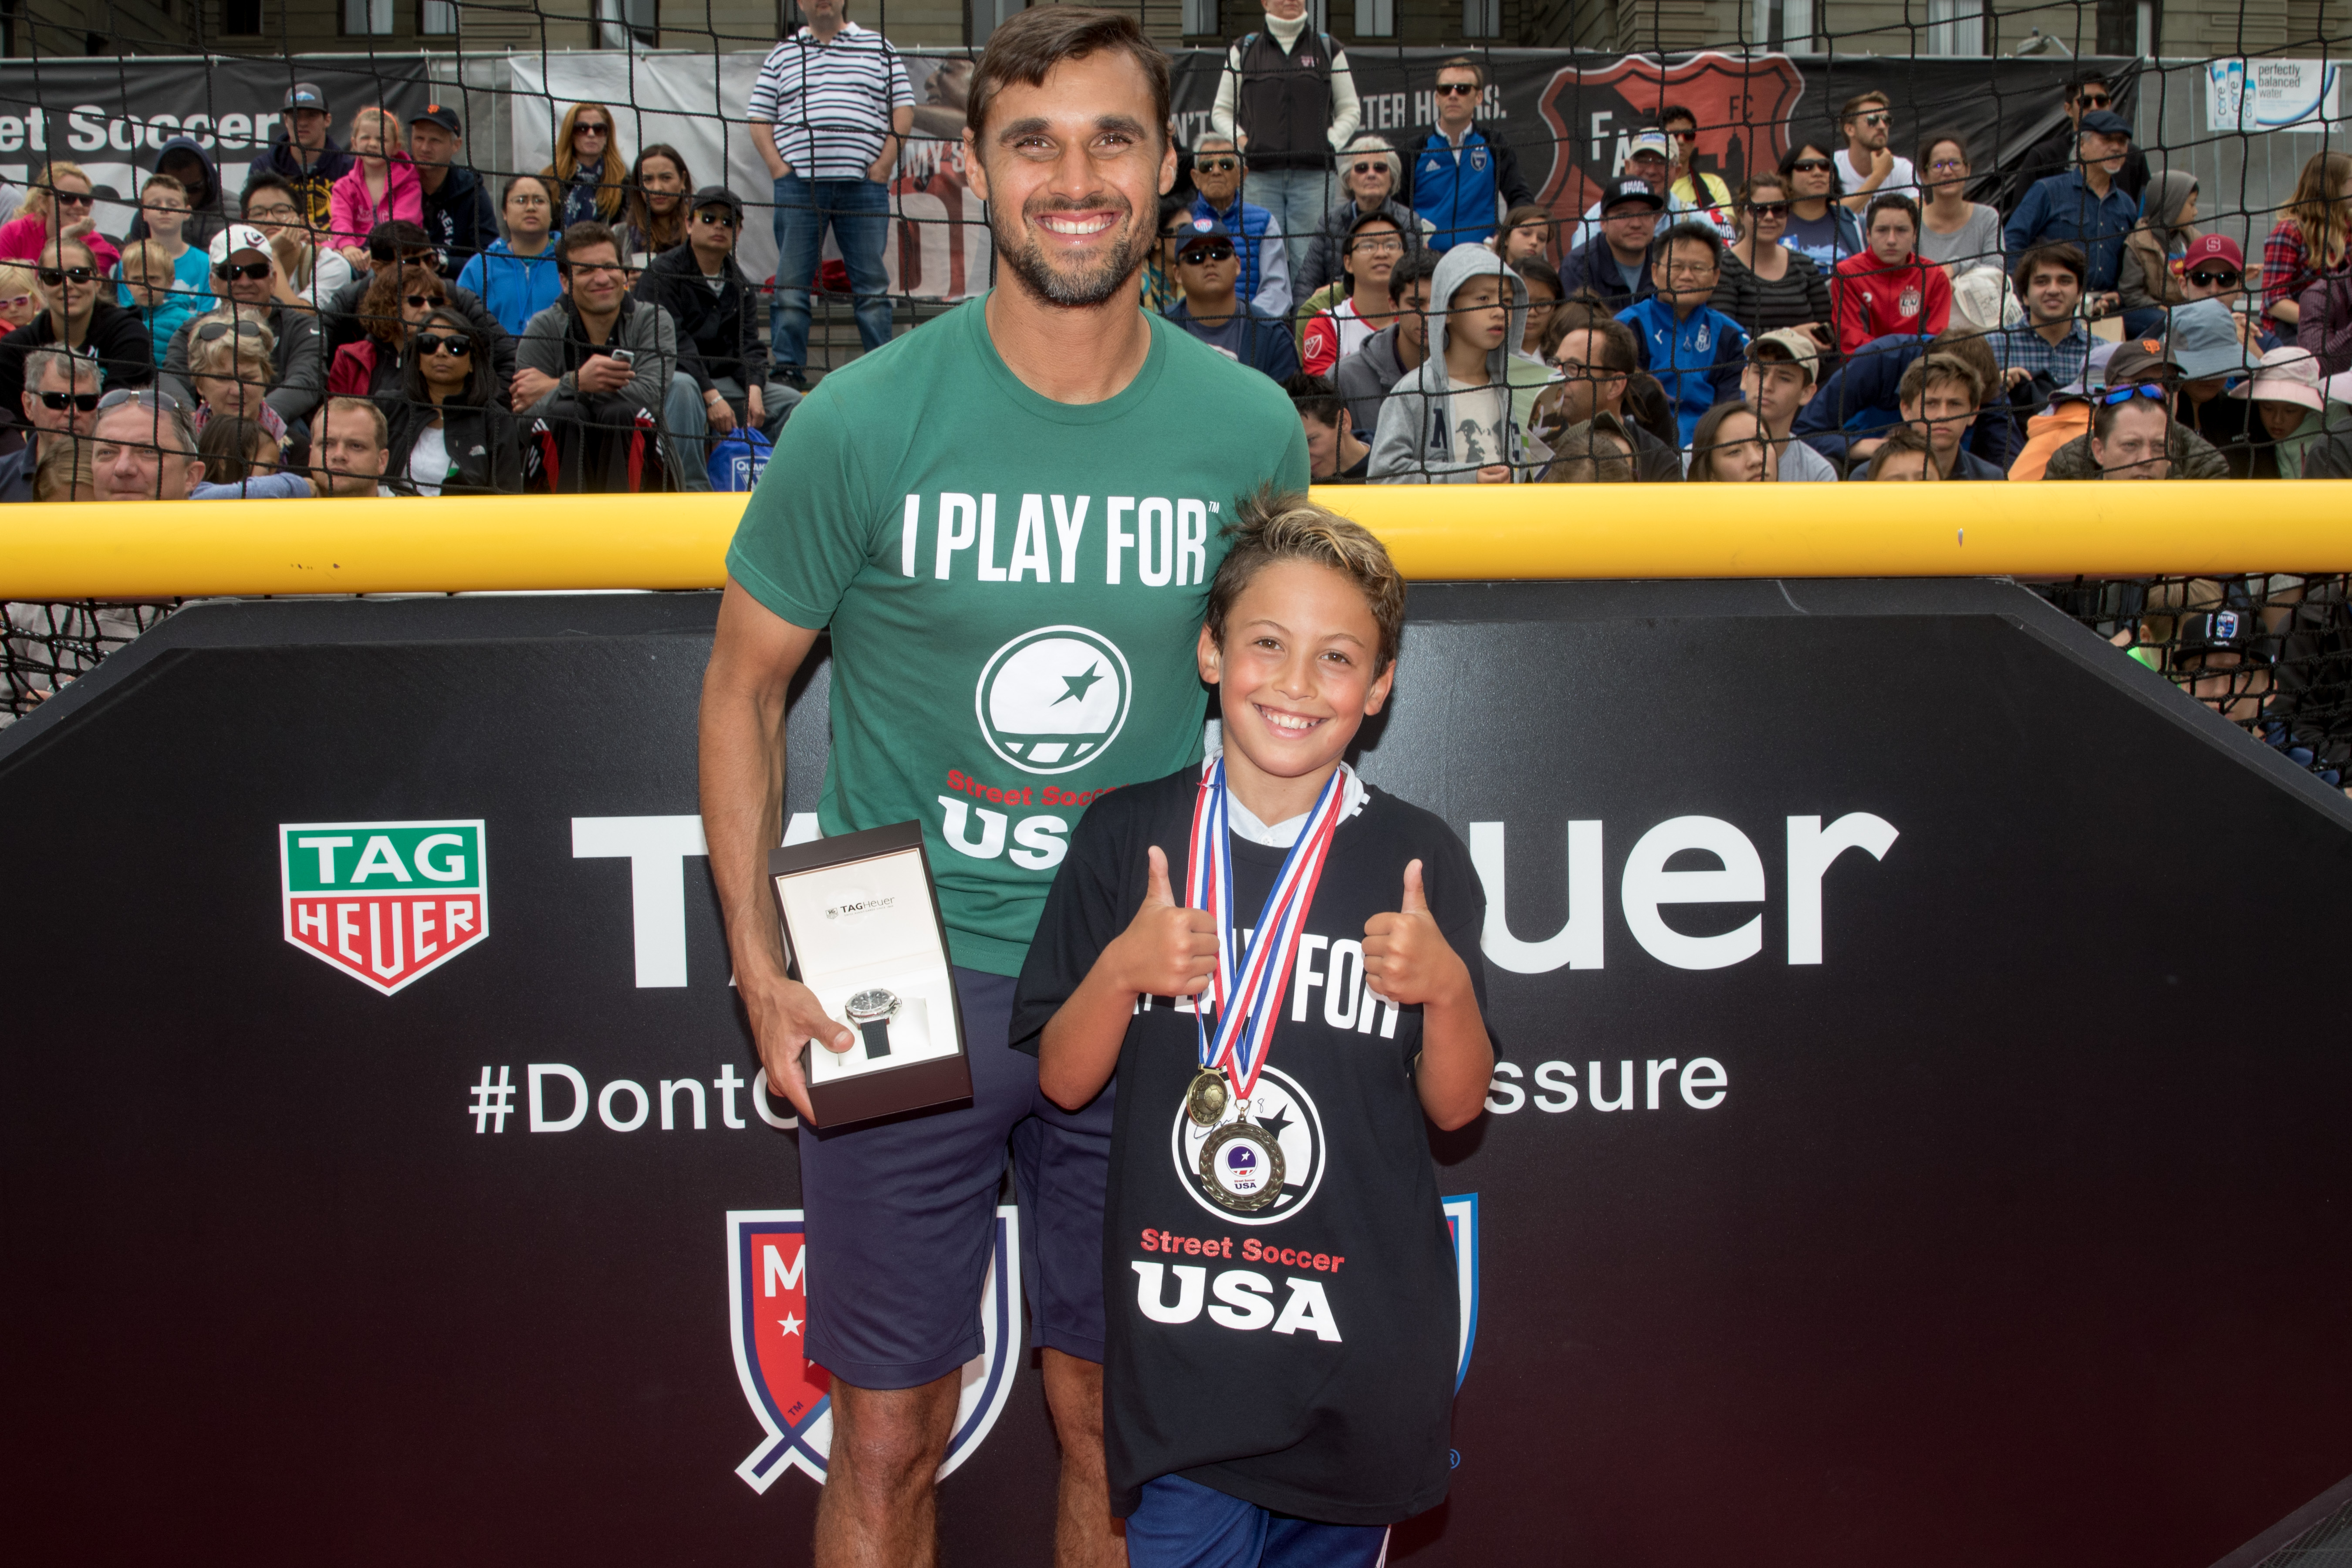 Street Soccer USA Cup - Chris Wondolowski presented TagHeuer watch